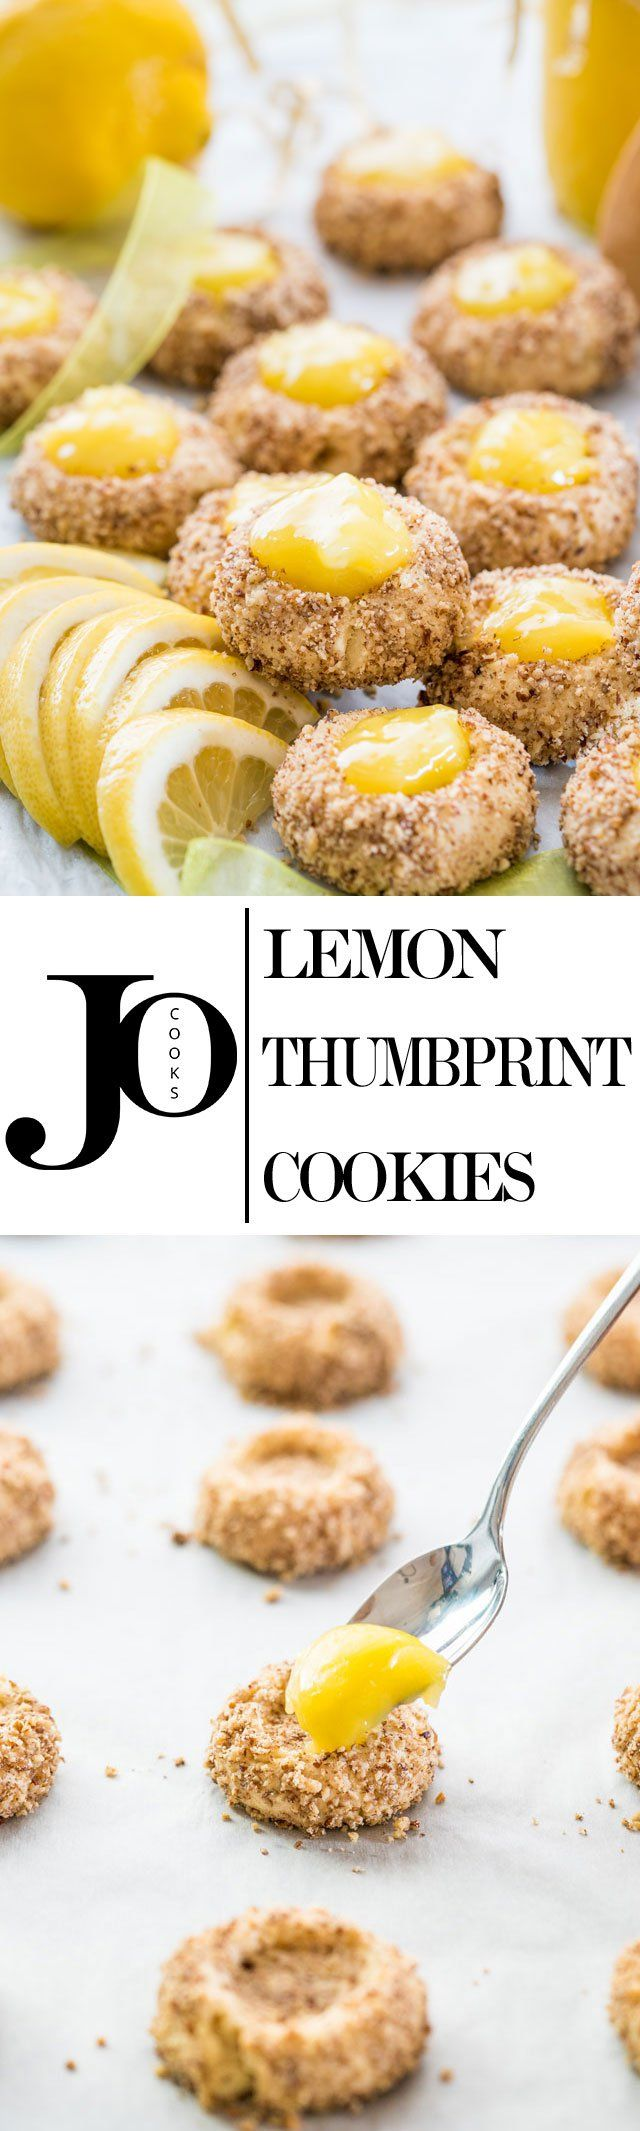 These Lemon Thumbprint cookies are sure to be a tasty addition to any treat table or gifted tin.